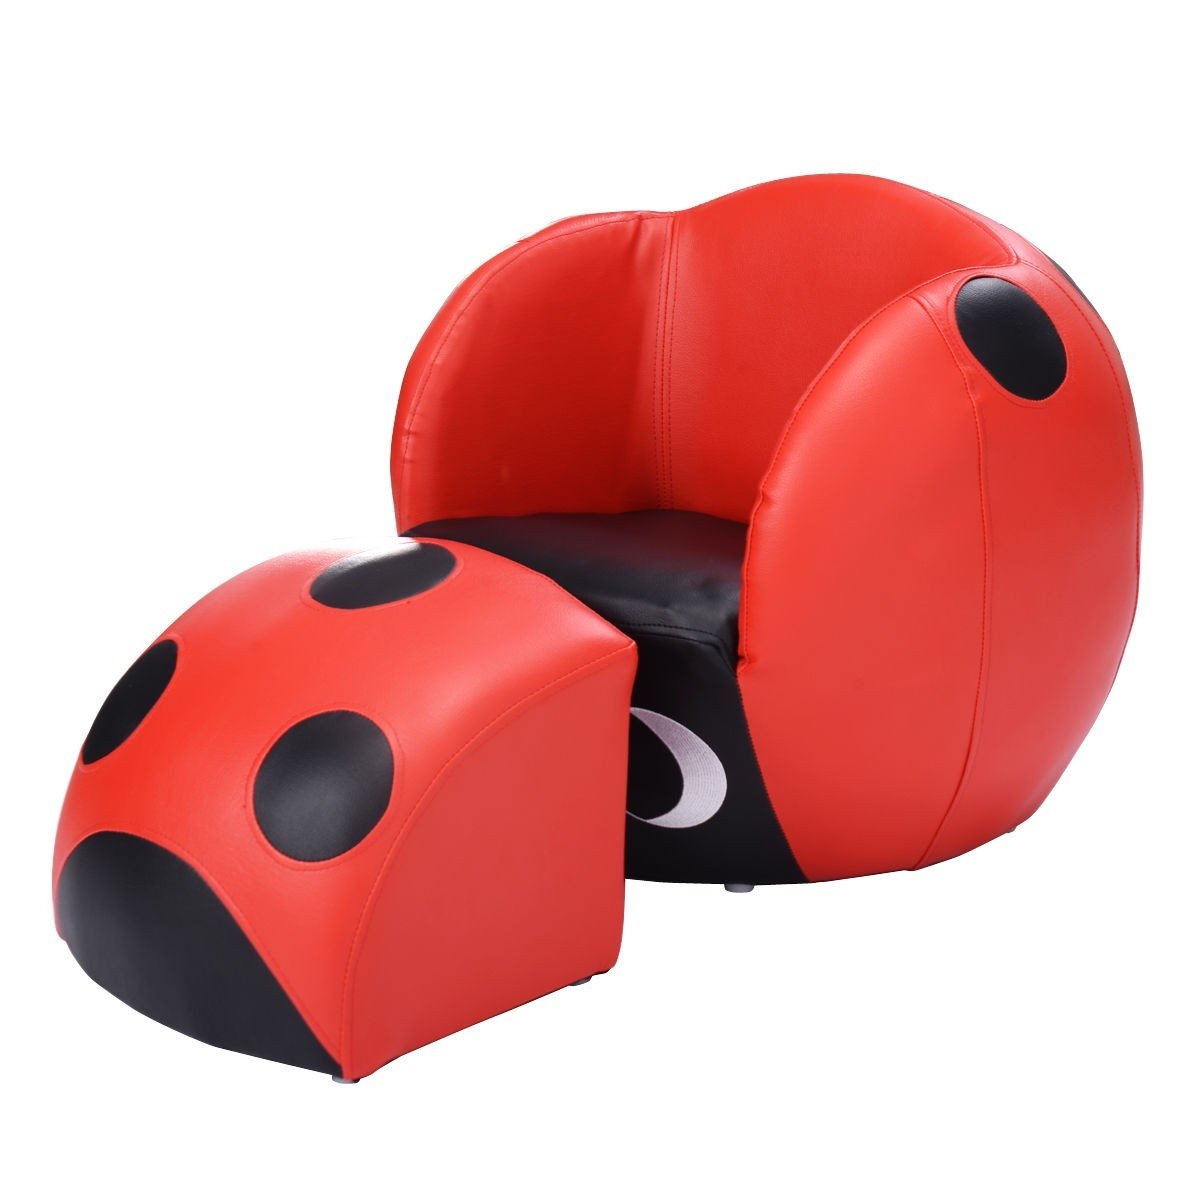 Cheap Kids Sofa Chair And Ottoman Set Find Kids Sofa Chair And